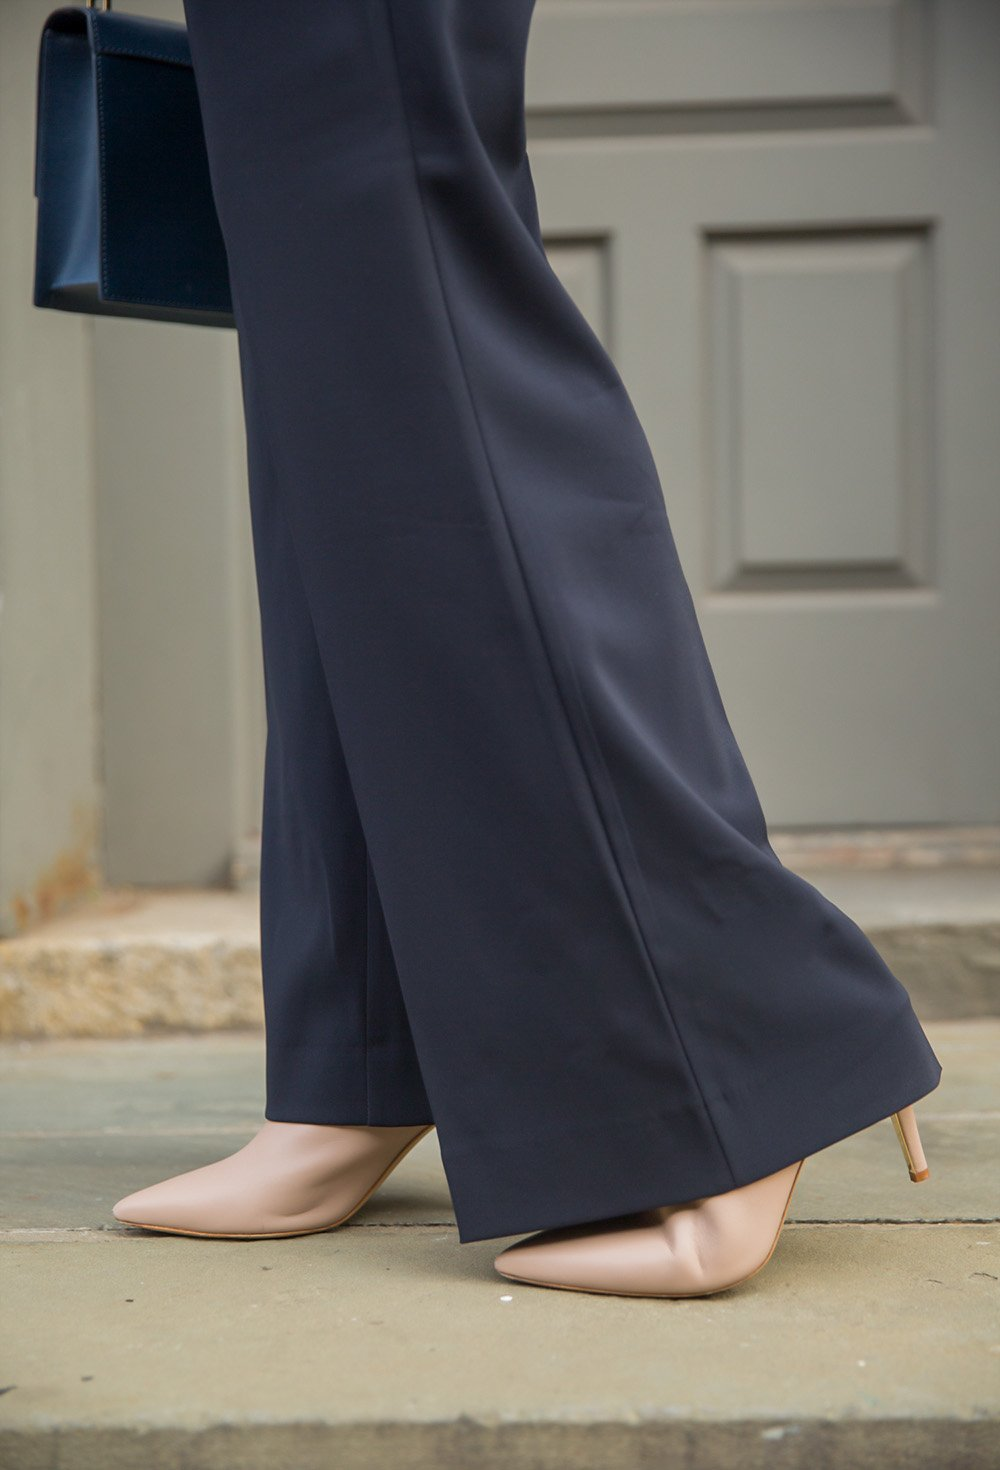 Wide Leg Pants and Marion Parke Mules worn by blogger Ashley Brooke